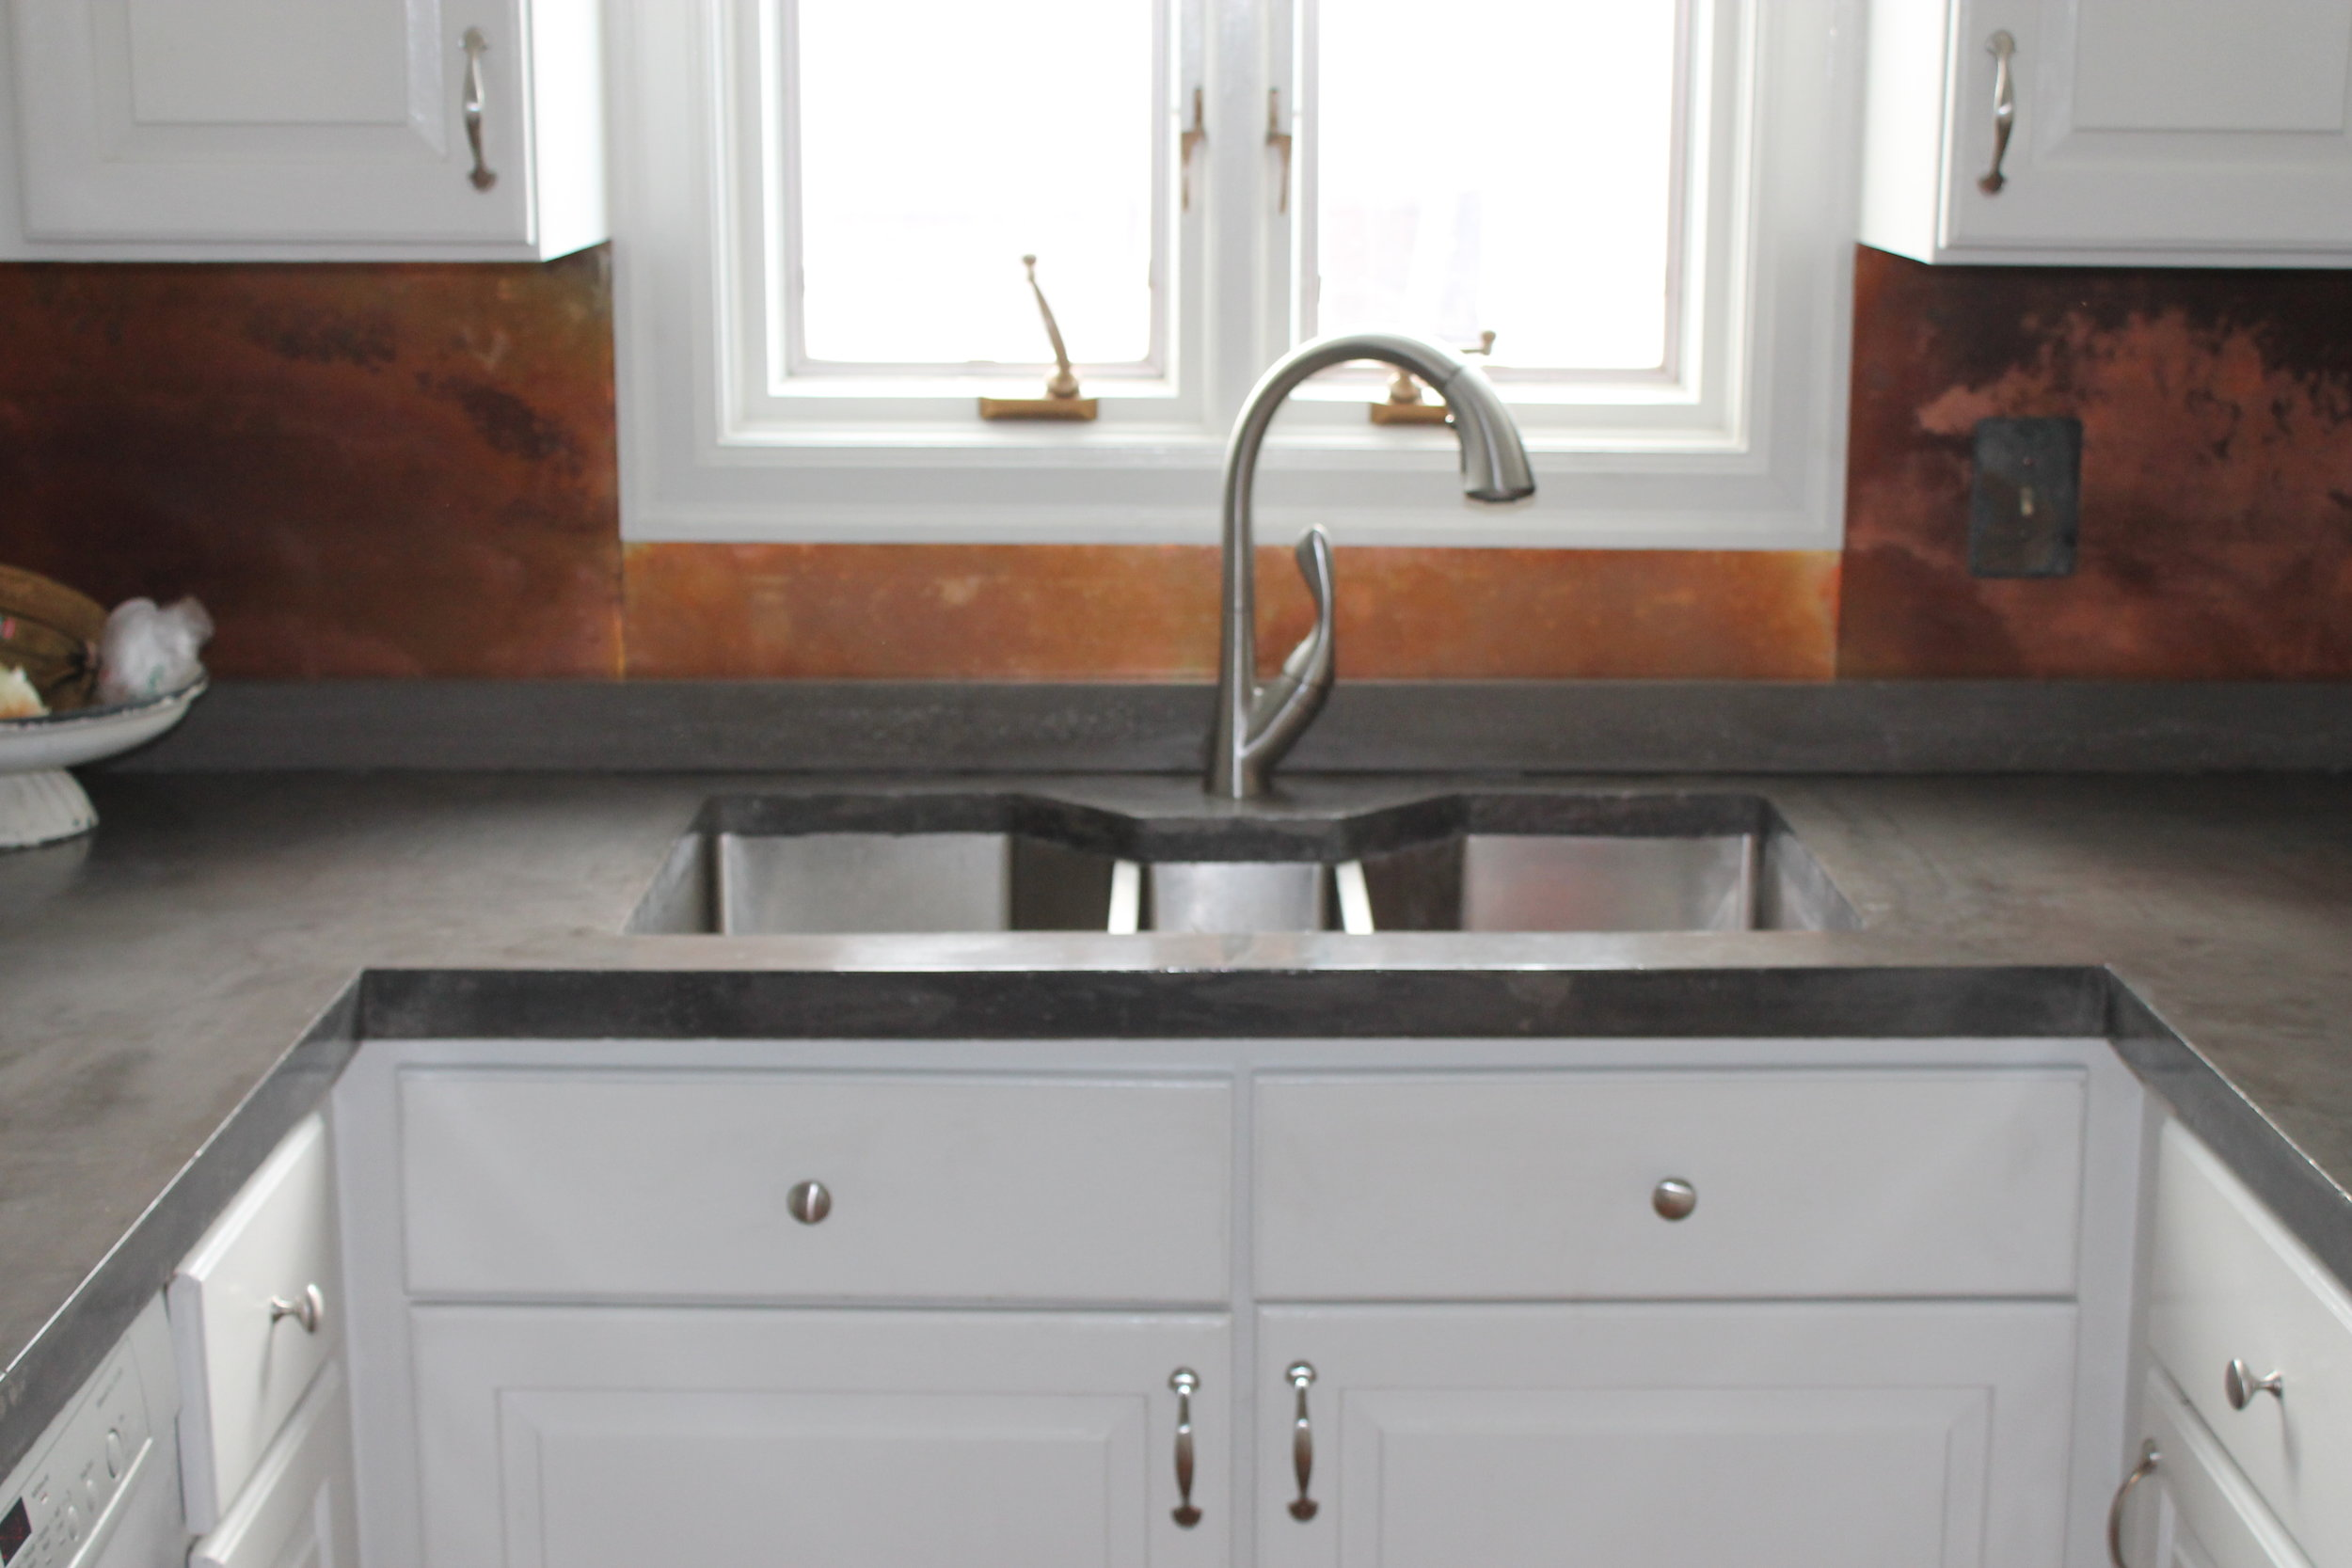 Concrete Kitchen Countertops – The Concrete Moon